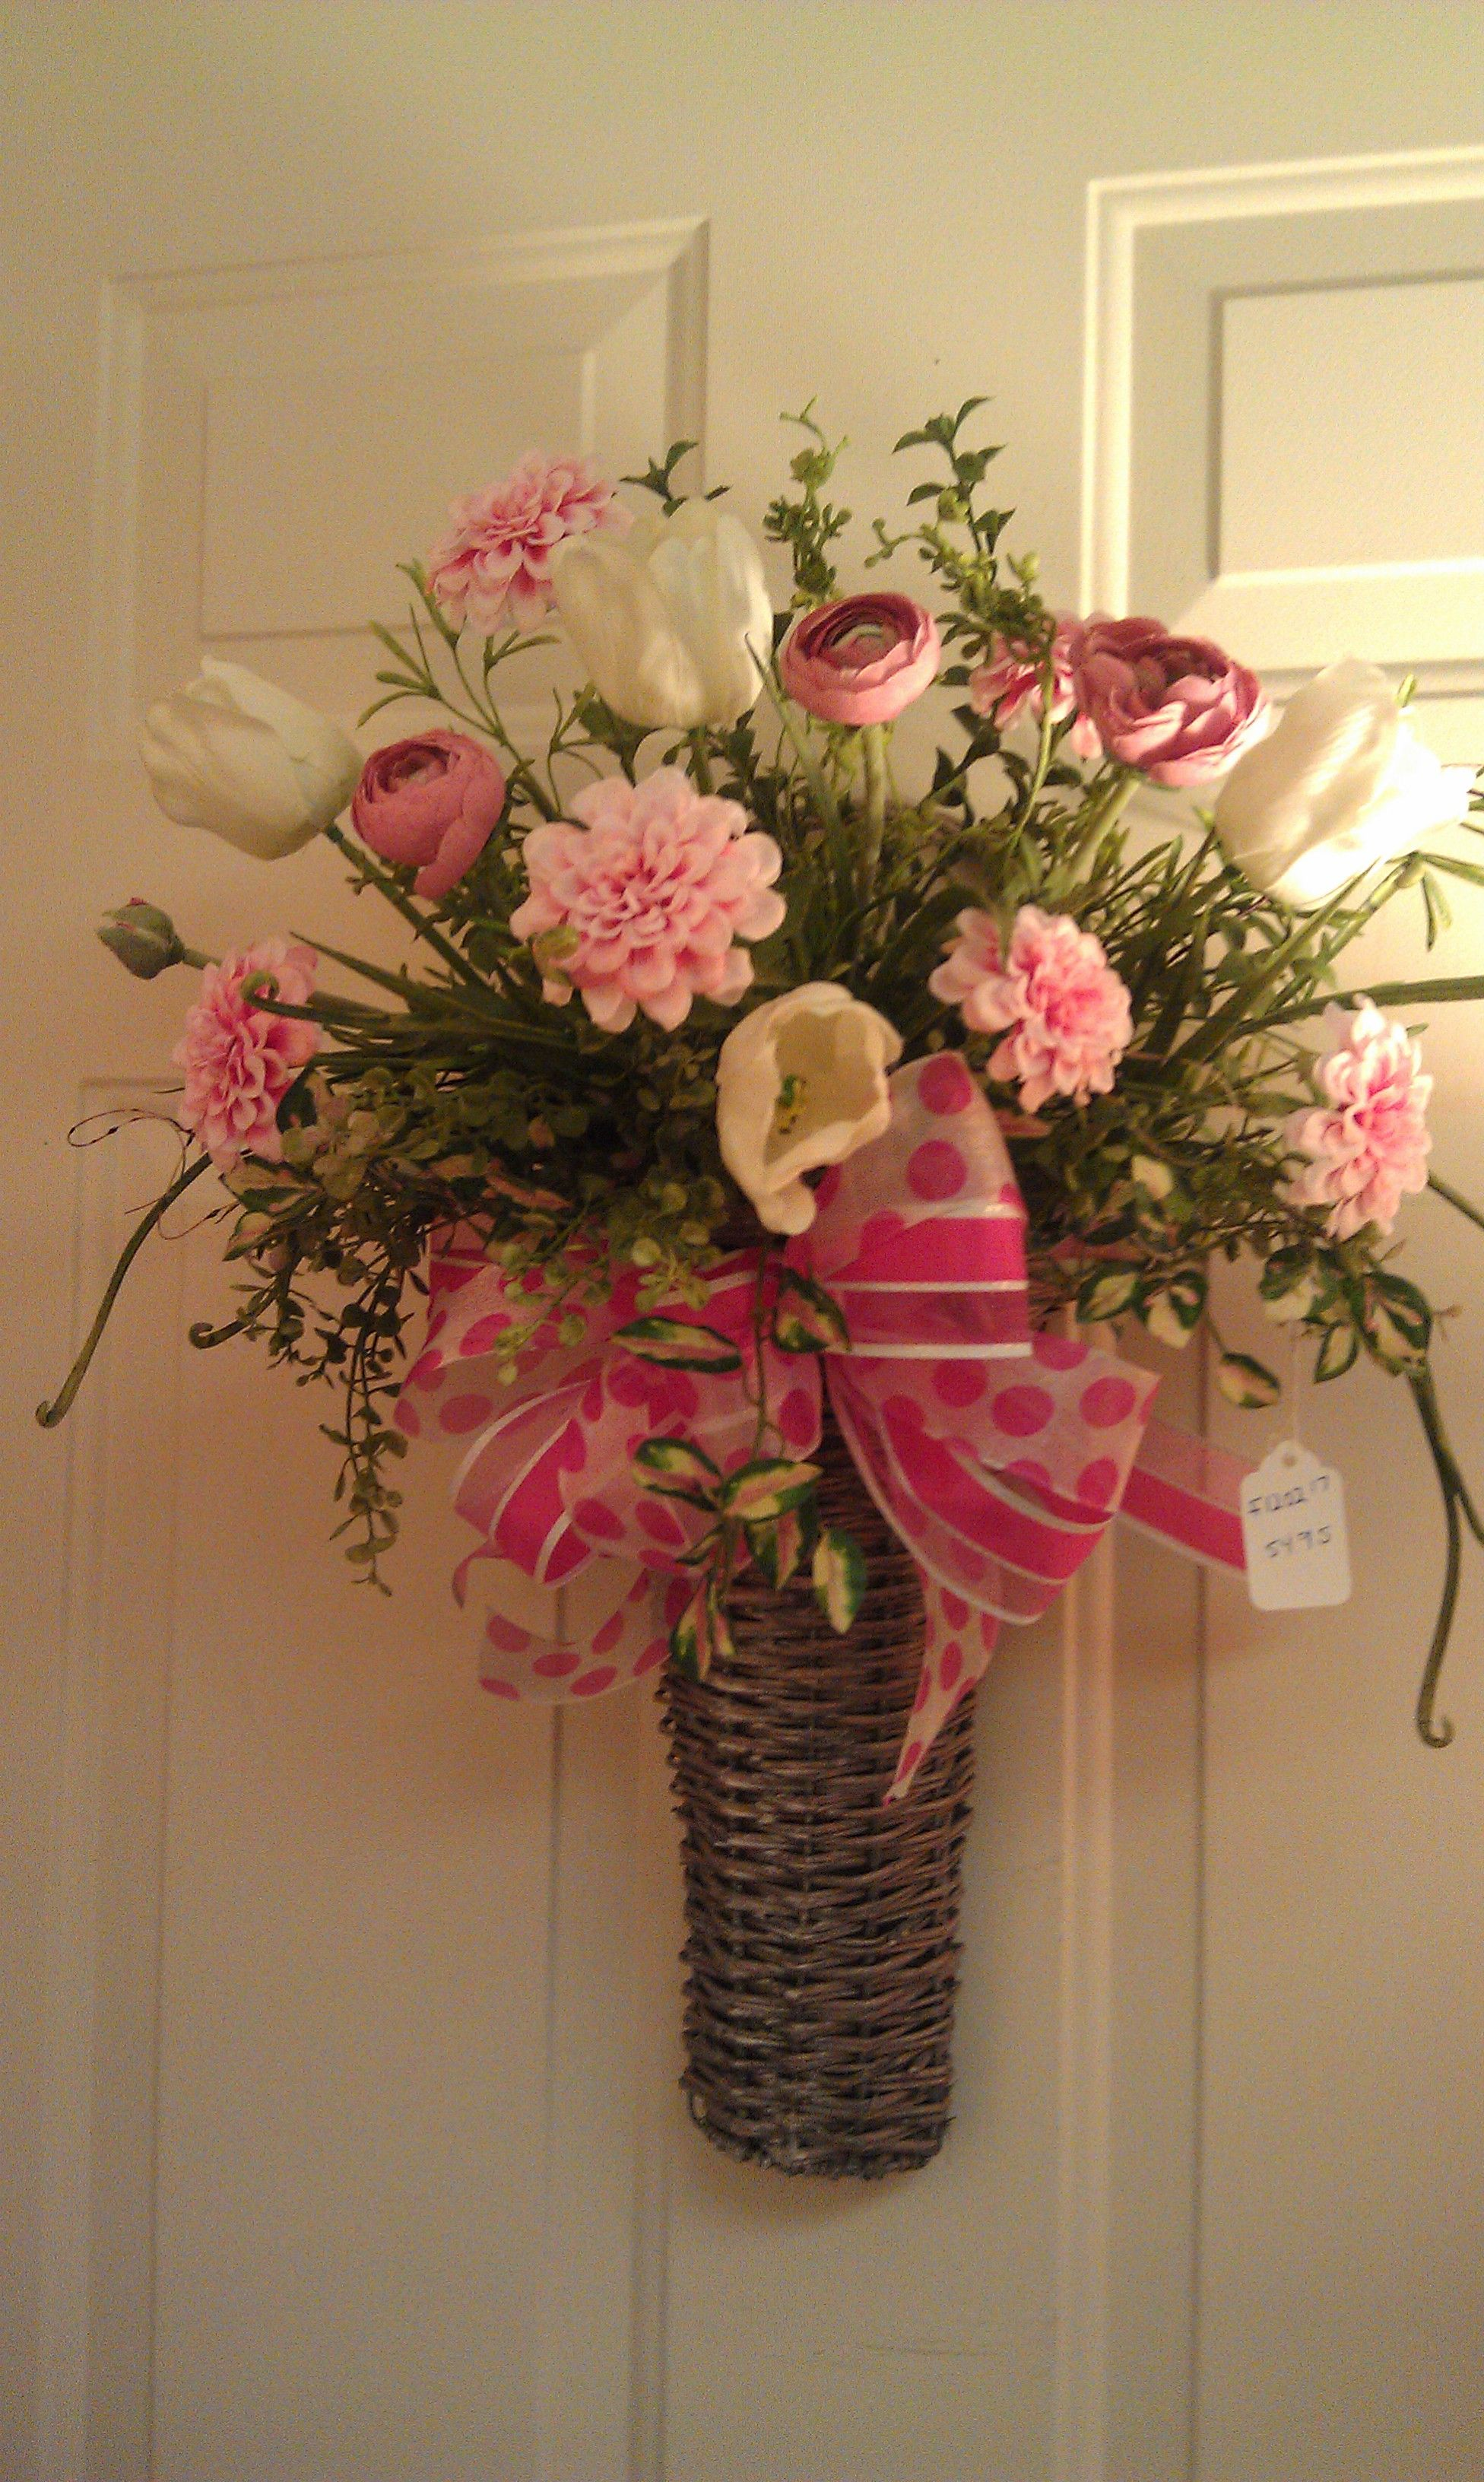 Pretty Wall Basket With Spring Flowers and Bow. Baskets ... on Decorative Wall Sconces For Flowers Arrangements id=20953